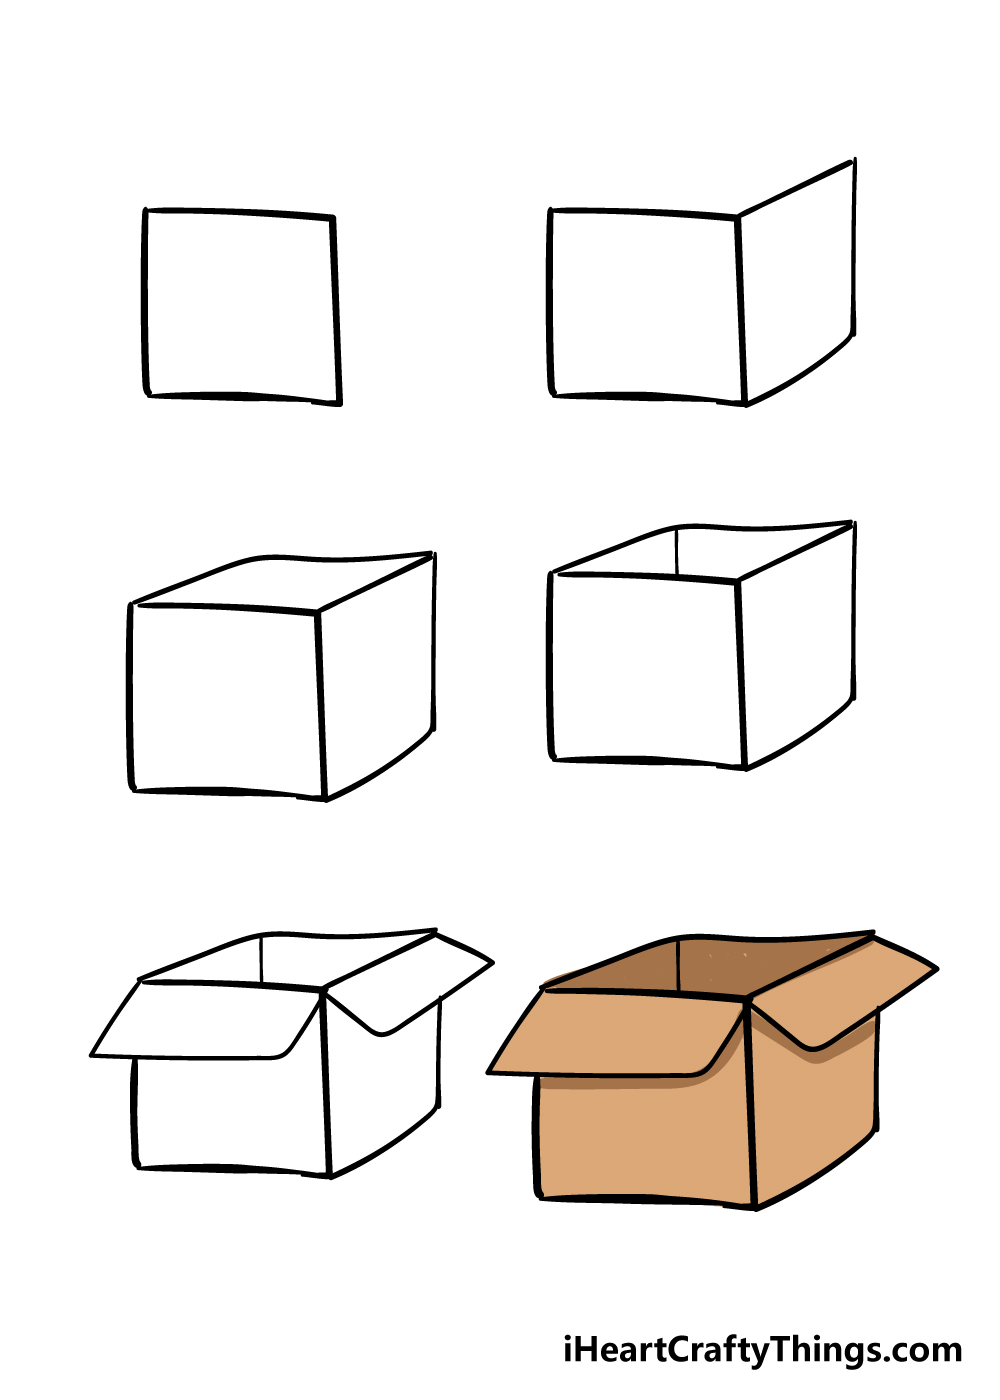 how to draw box in 6 steps